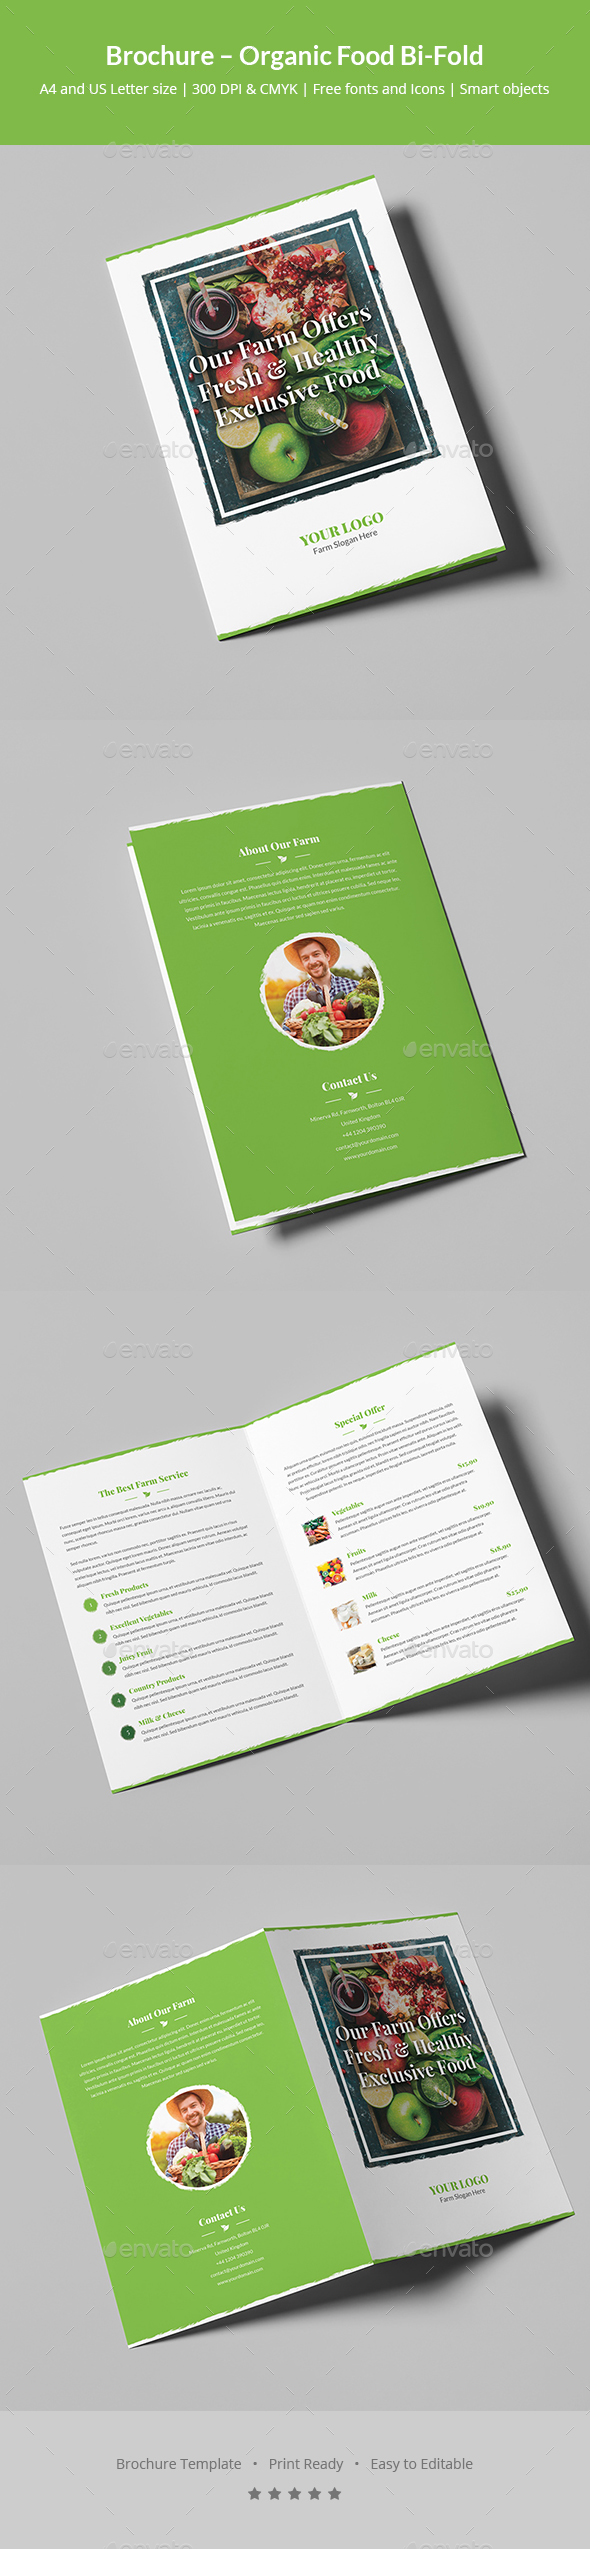 GraphicRiver Brochure Organic Food Bi-Fold 20431566